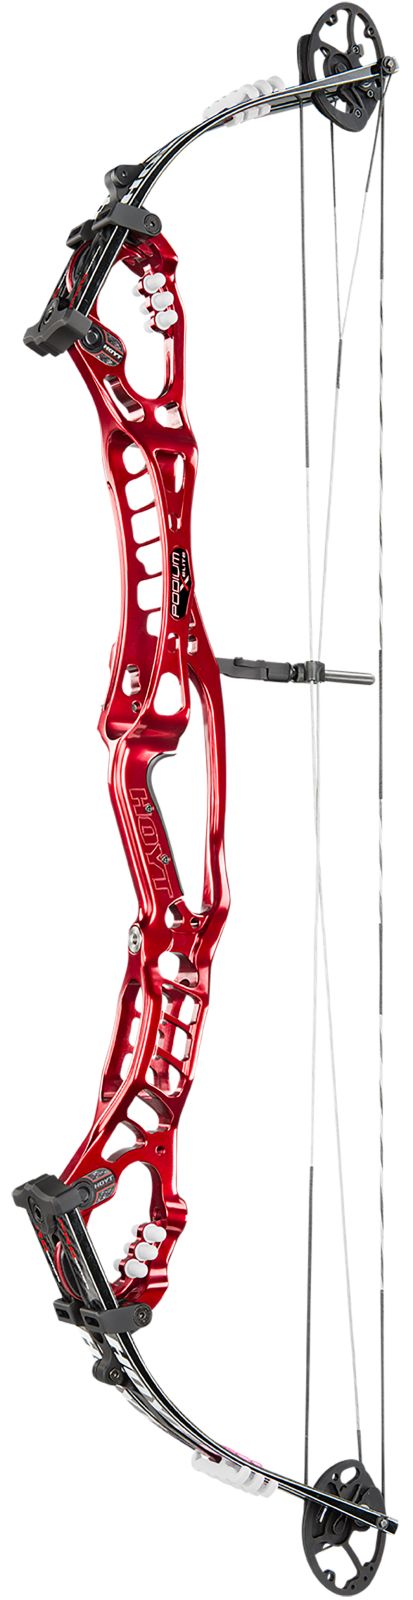 Hoyt Podium X Elite | Hoyt.com